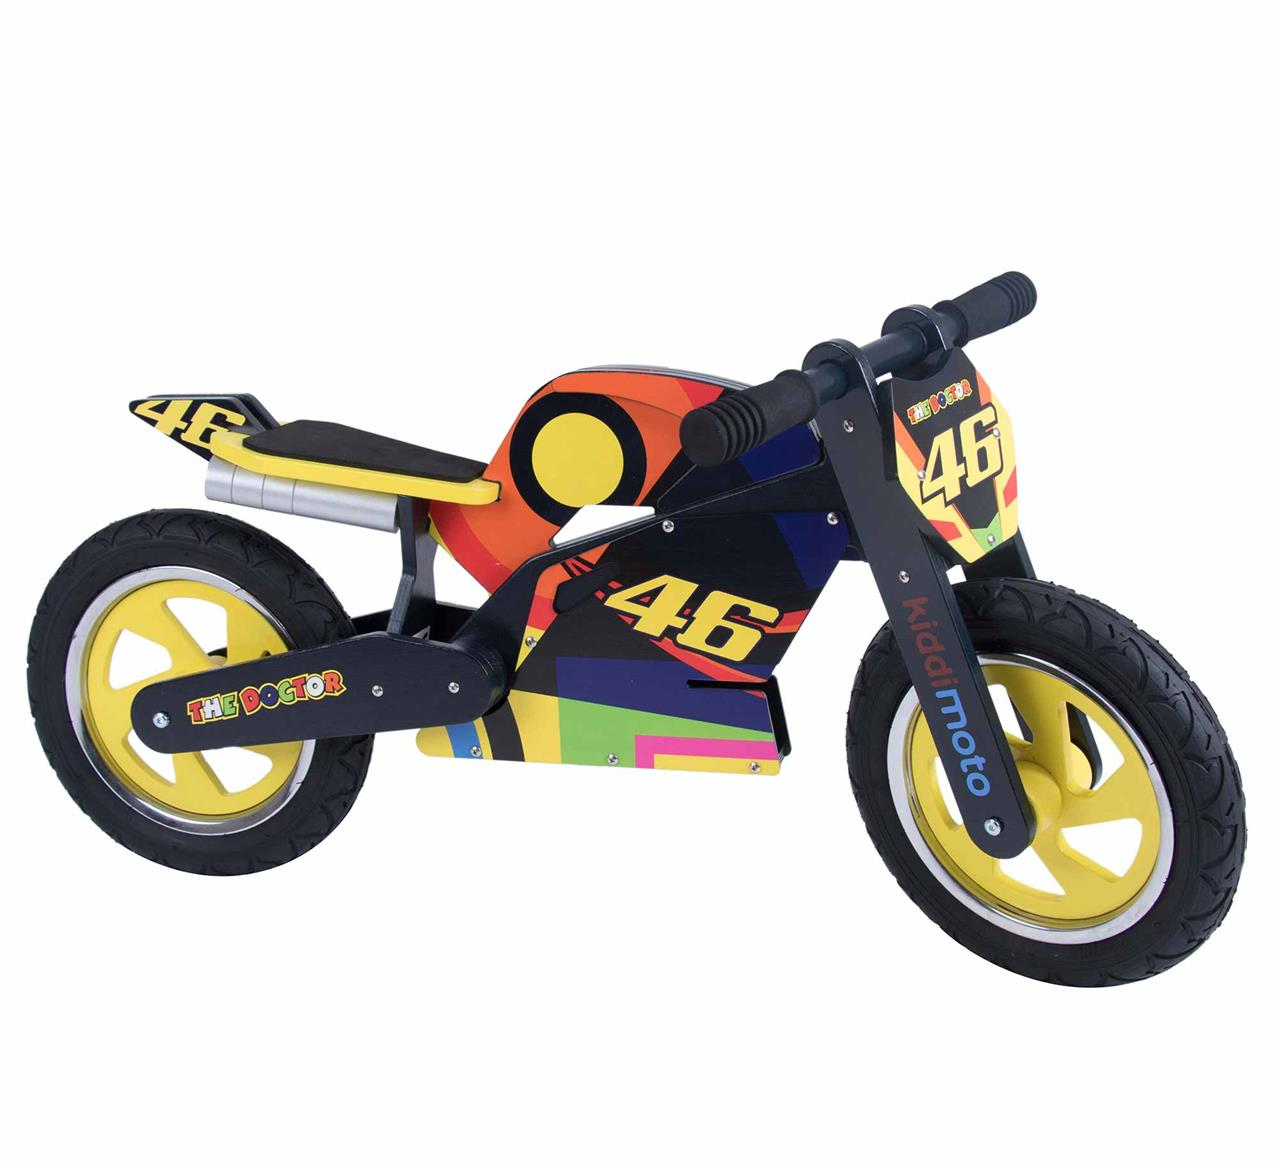 The Valentino Rossi balance bike